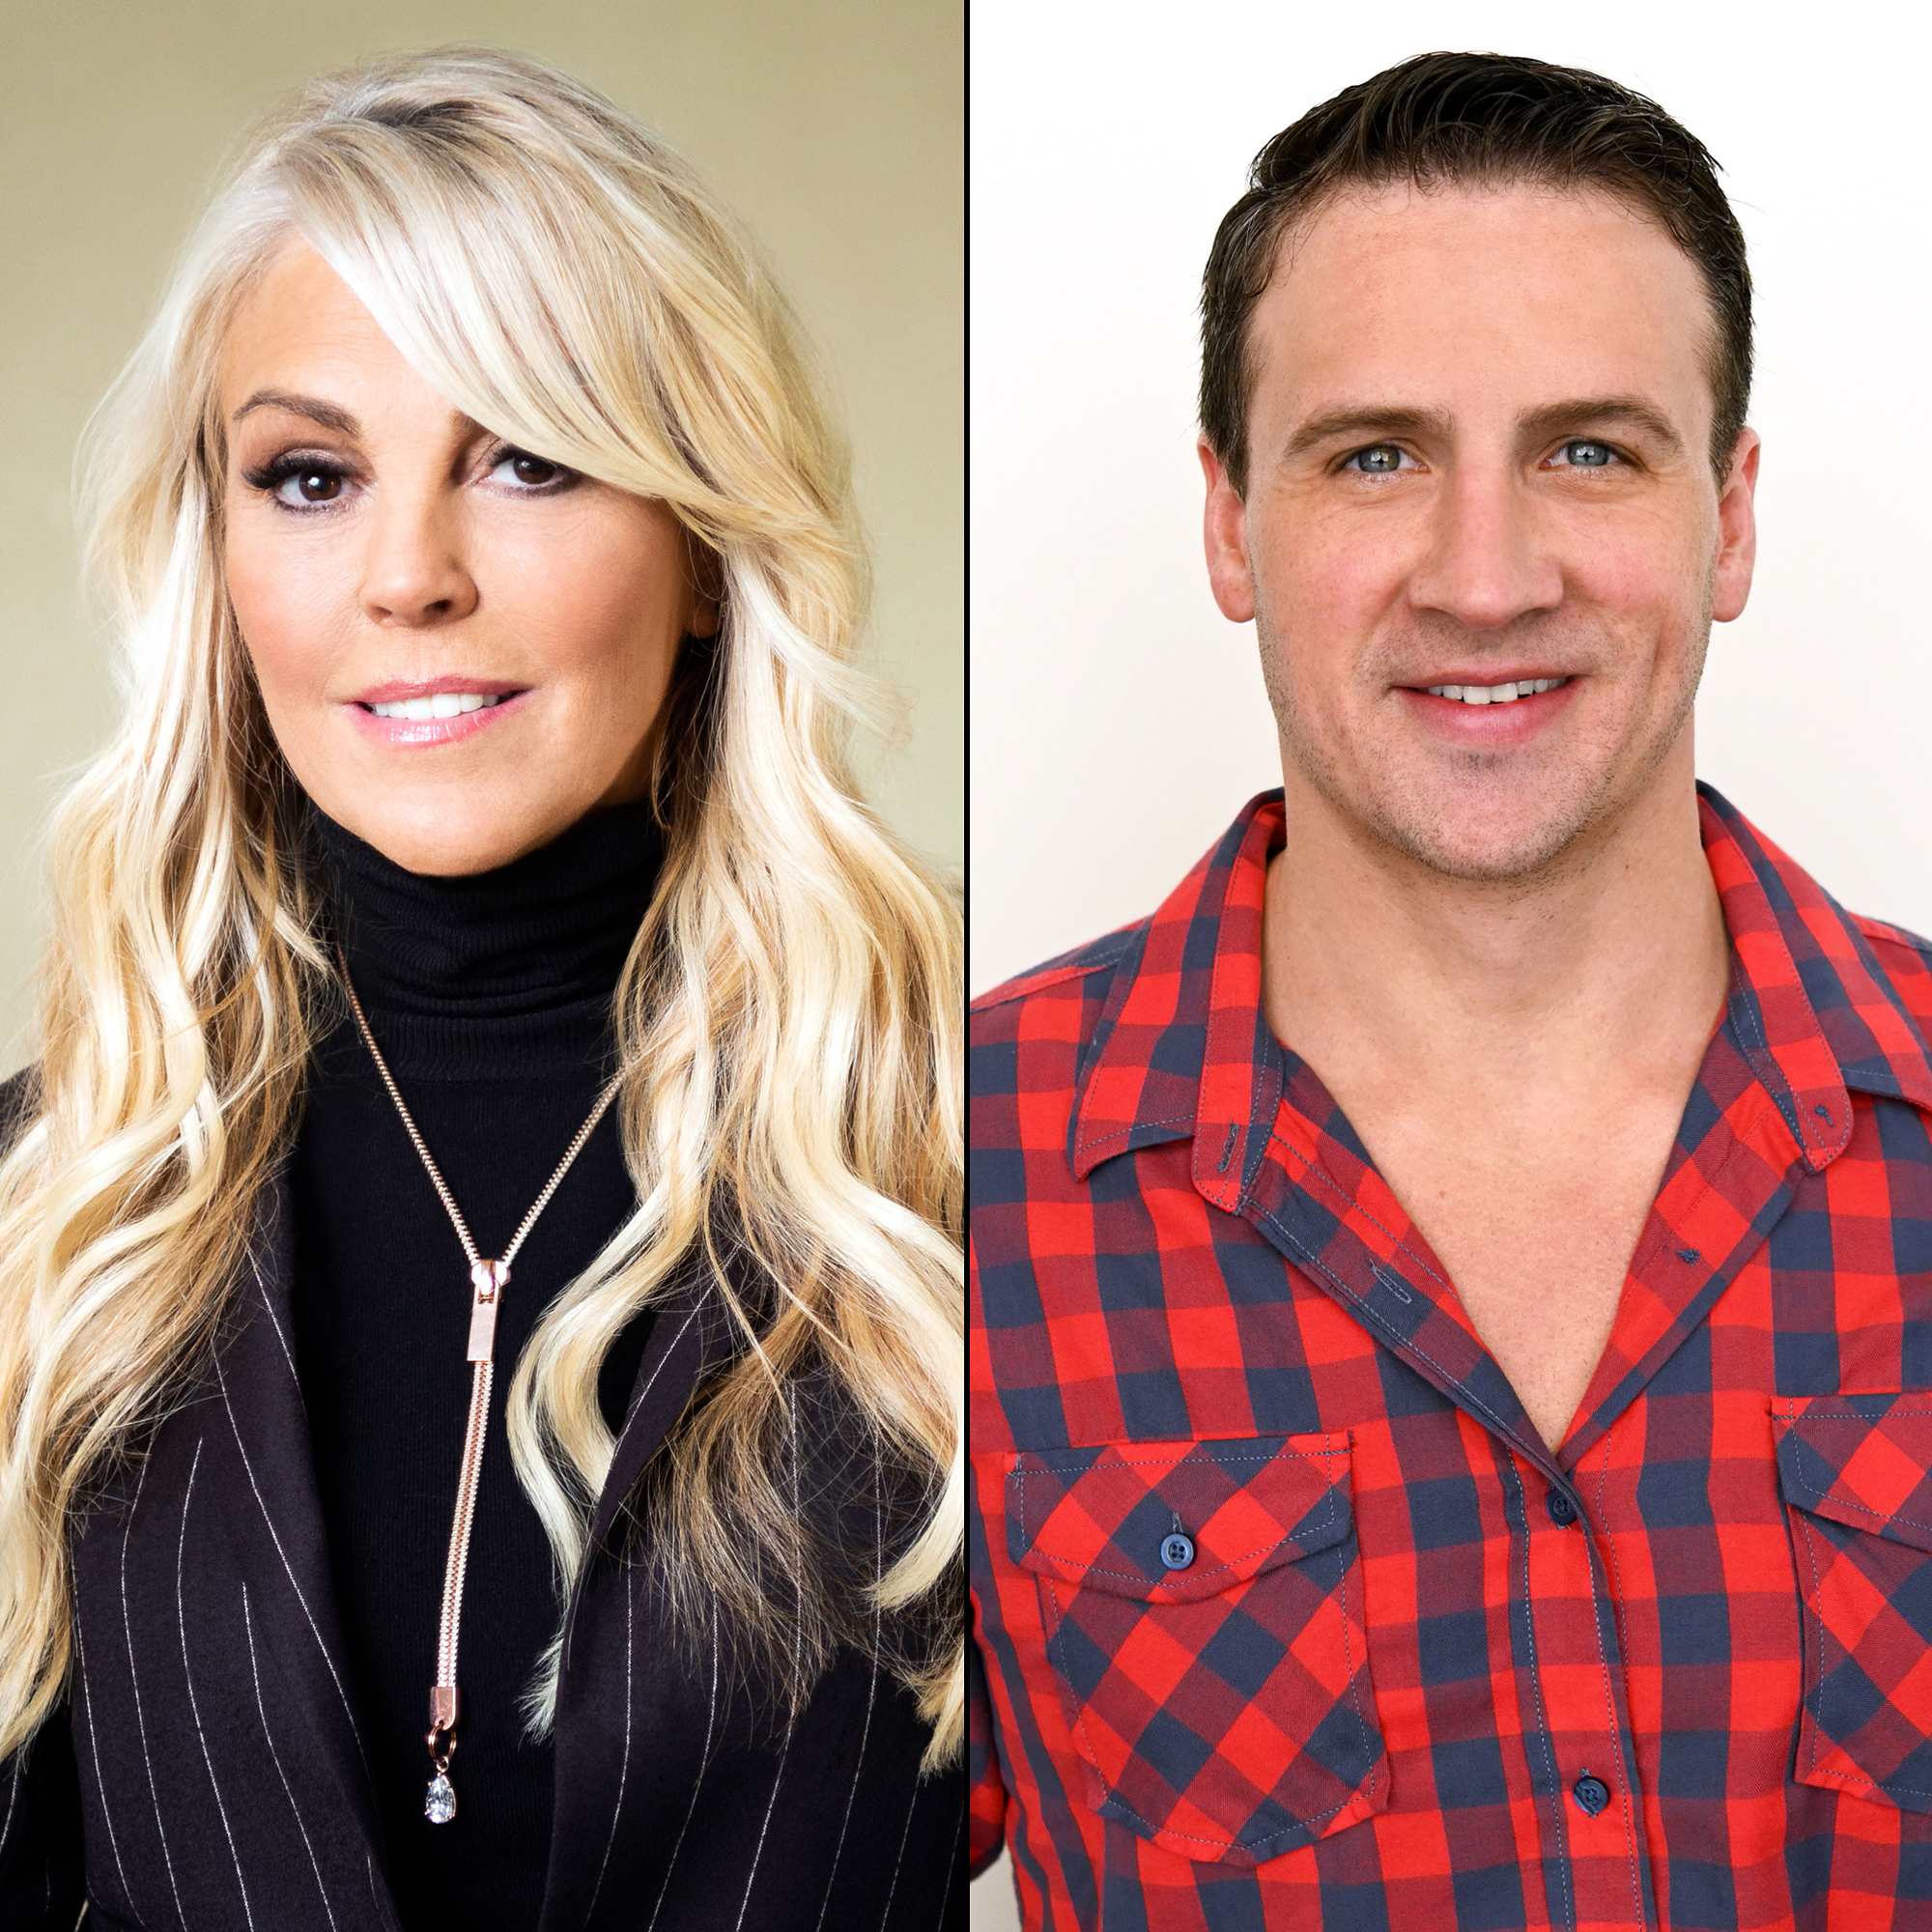 BIG-BROTHER-CELEBRITY-EDITION Dina Lohan Ryan Lochte - Dina Lohan and Ryan Lochte.